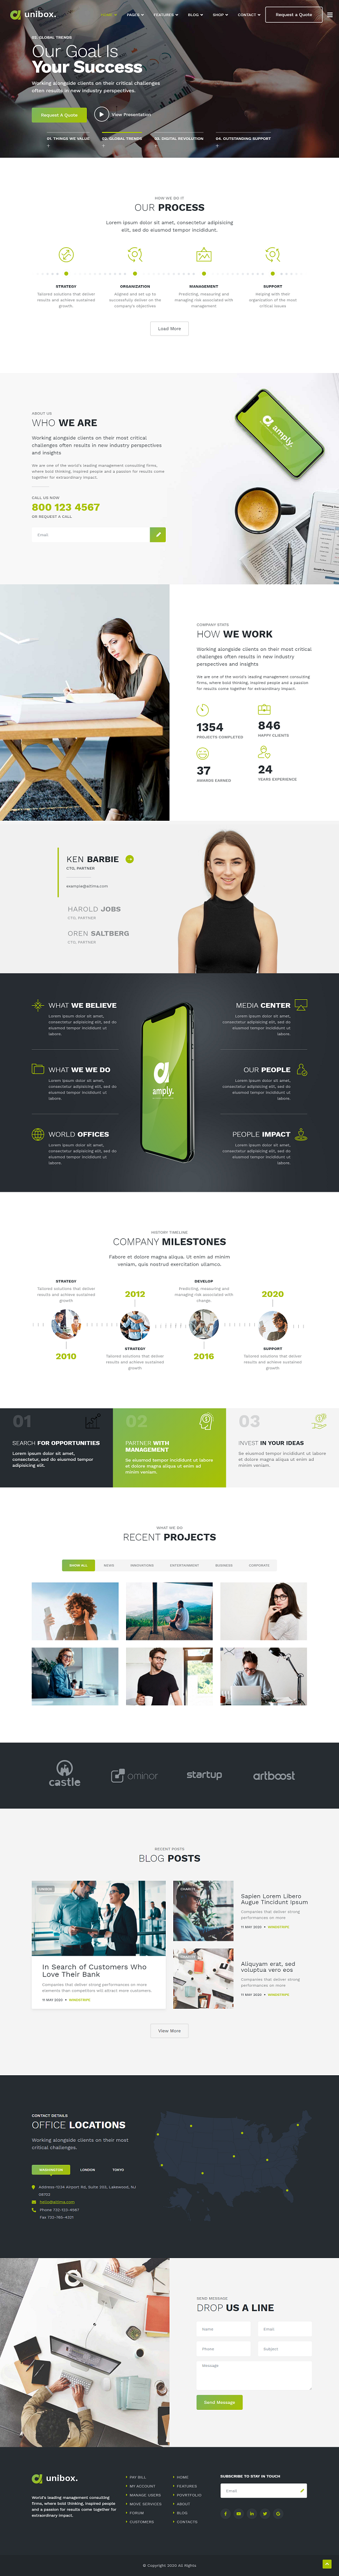 Unibox - Multipurpose Corporate Business Joomla Template - 2